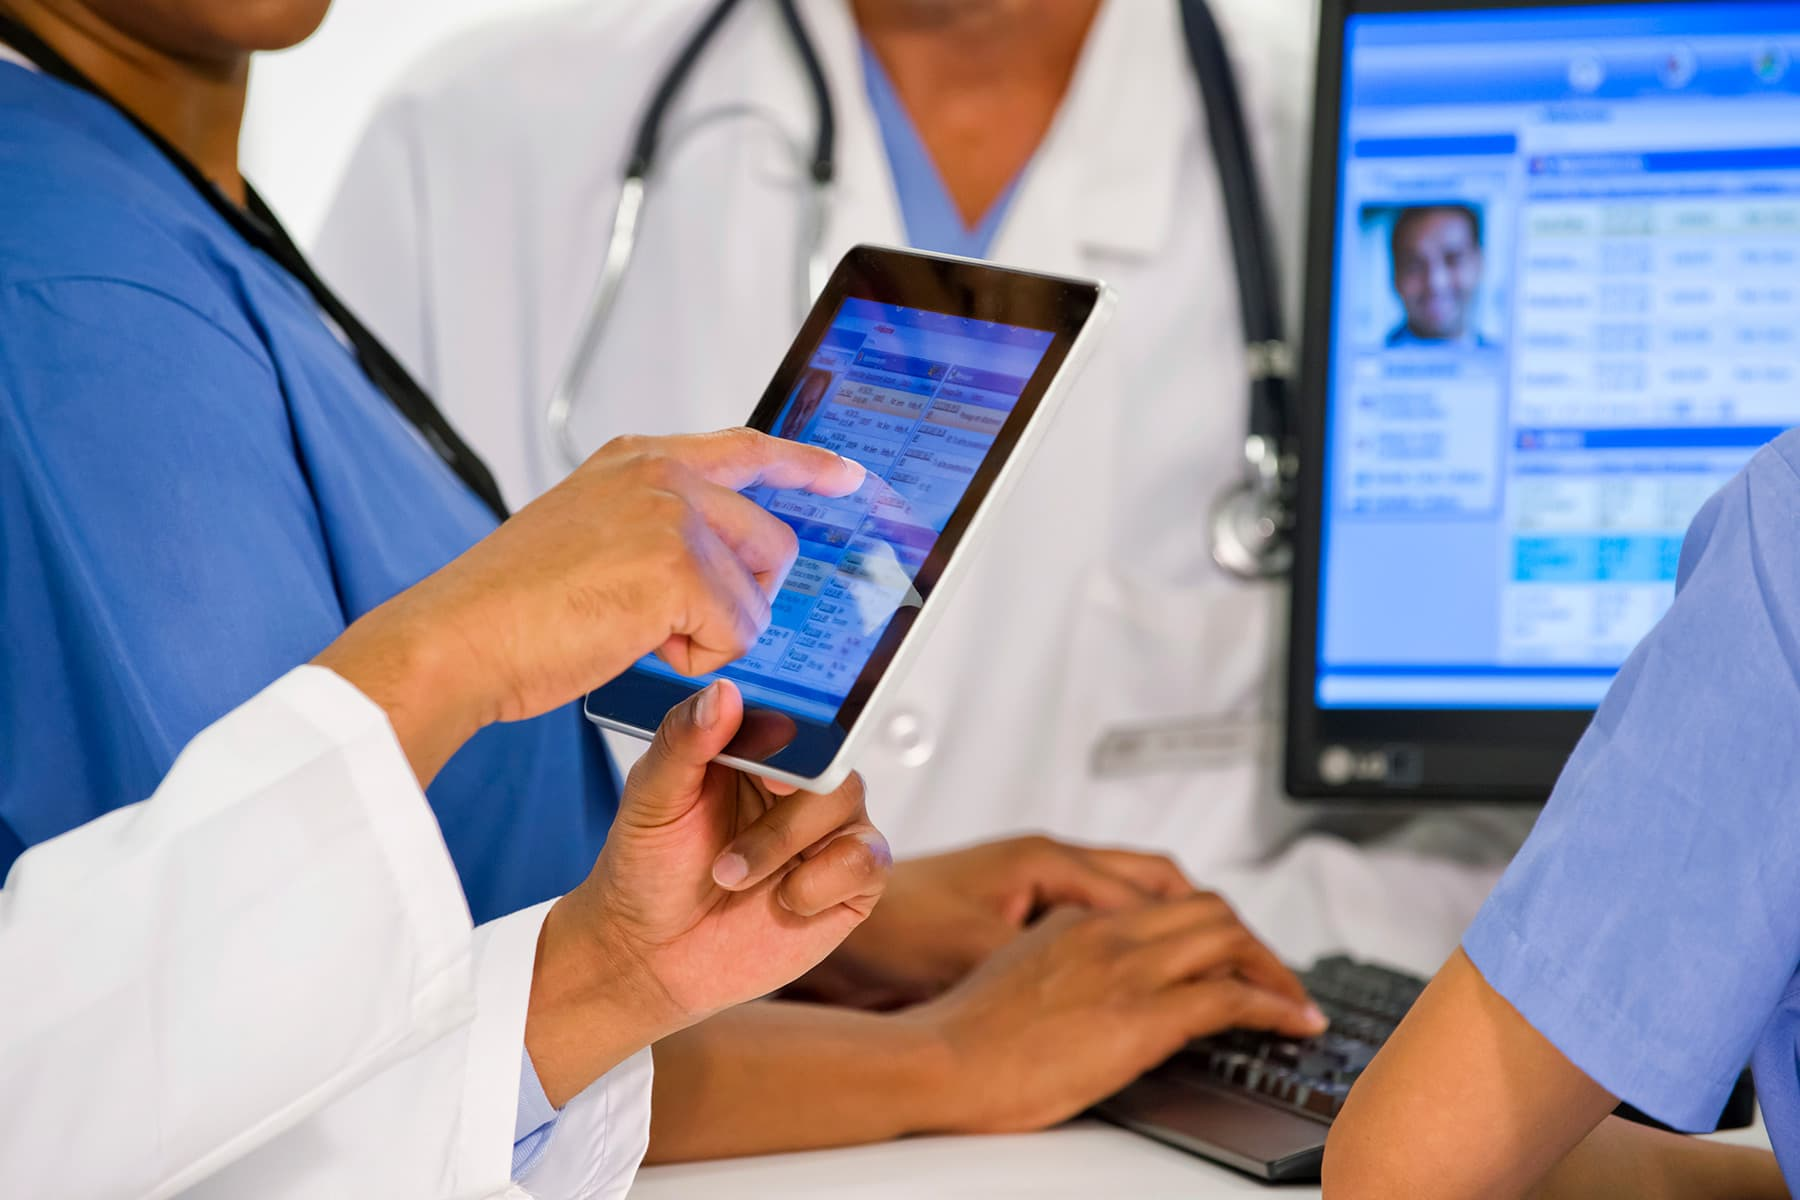 $100 Million Investment Aims to Ease Health Worker Shortage  - web md